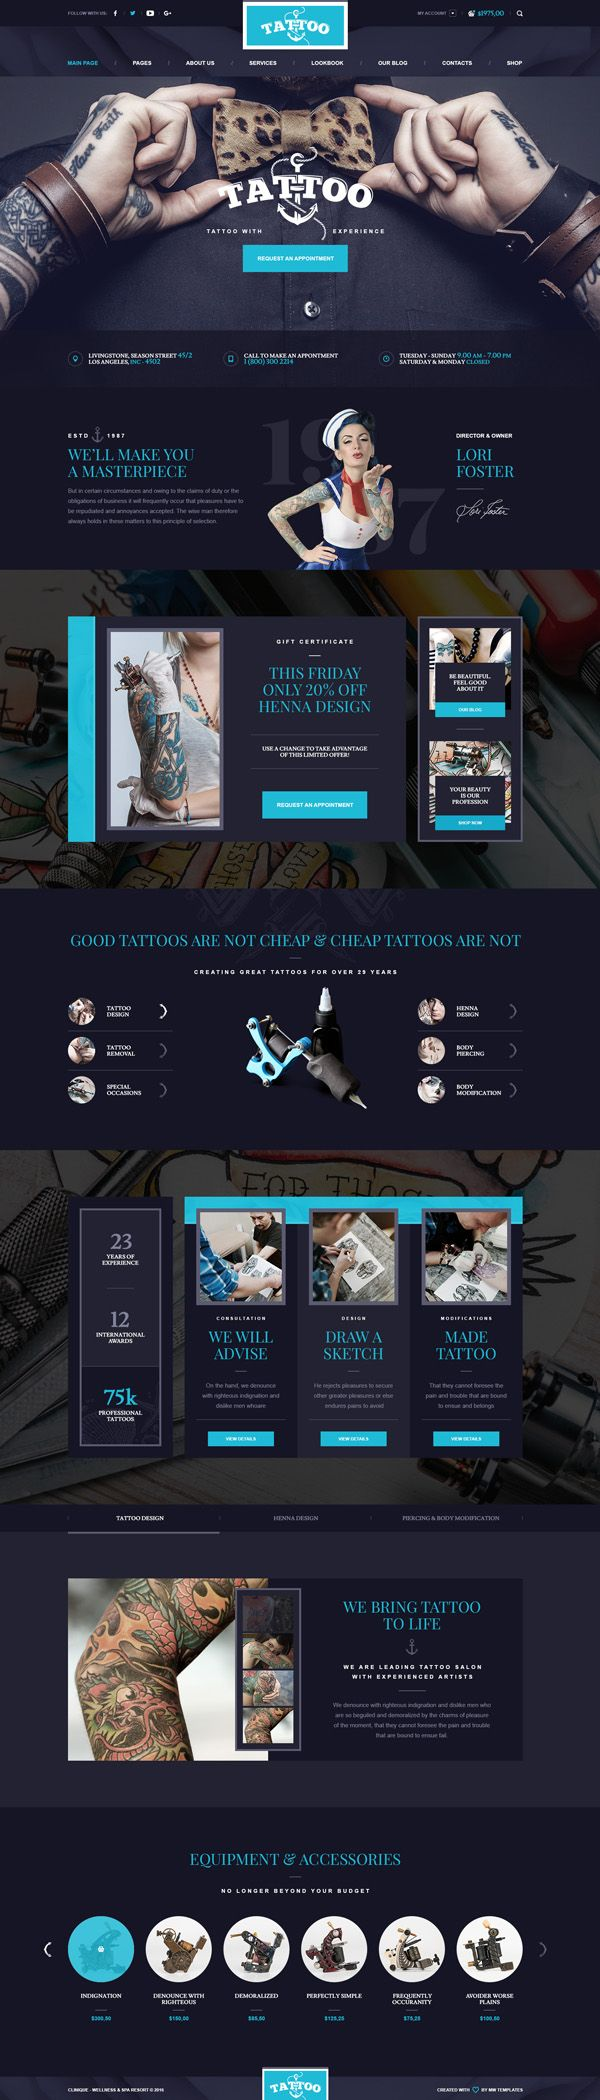 Ink Arts - Tattoo Salon PSD Template #psdtemplates #websitetemplates #webdesign